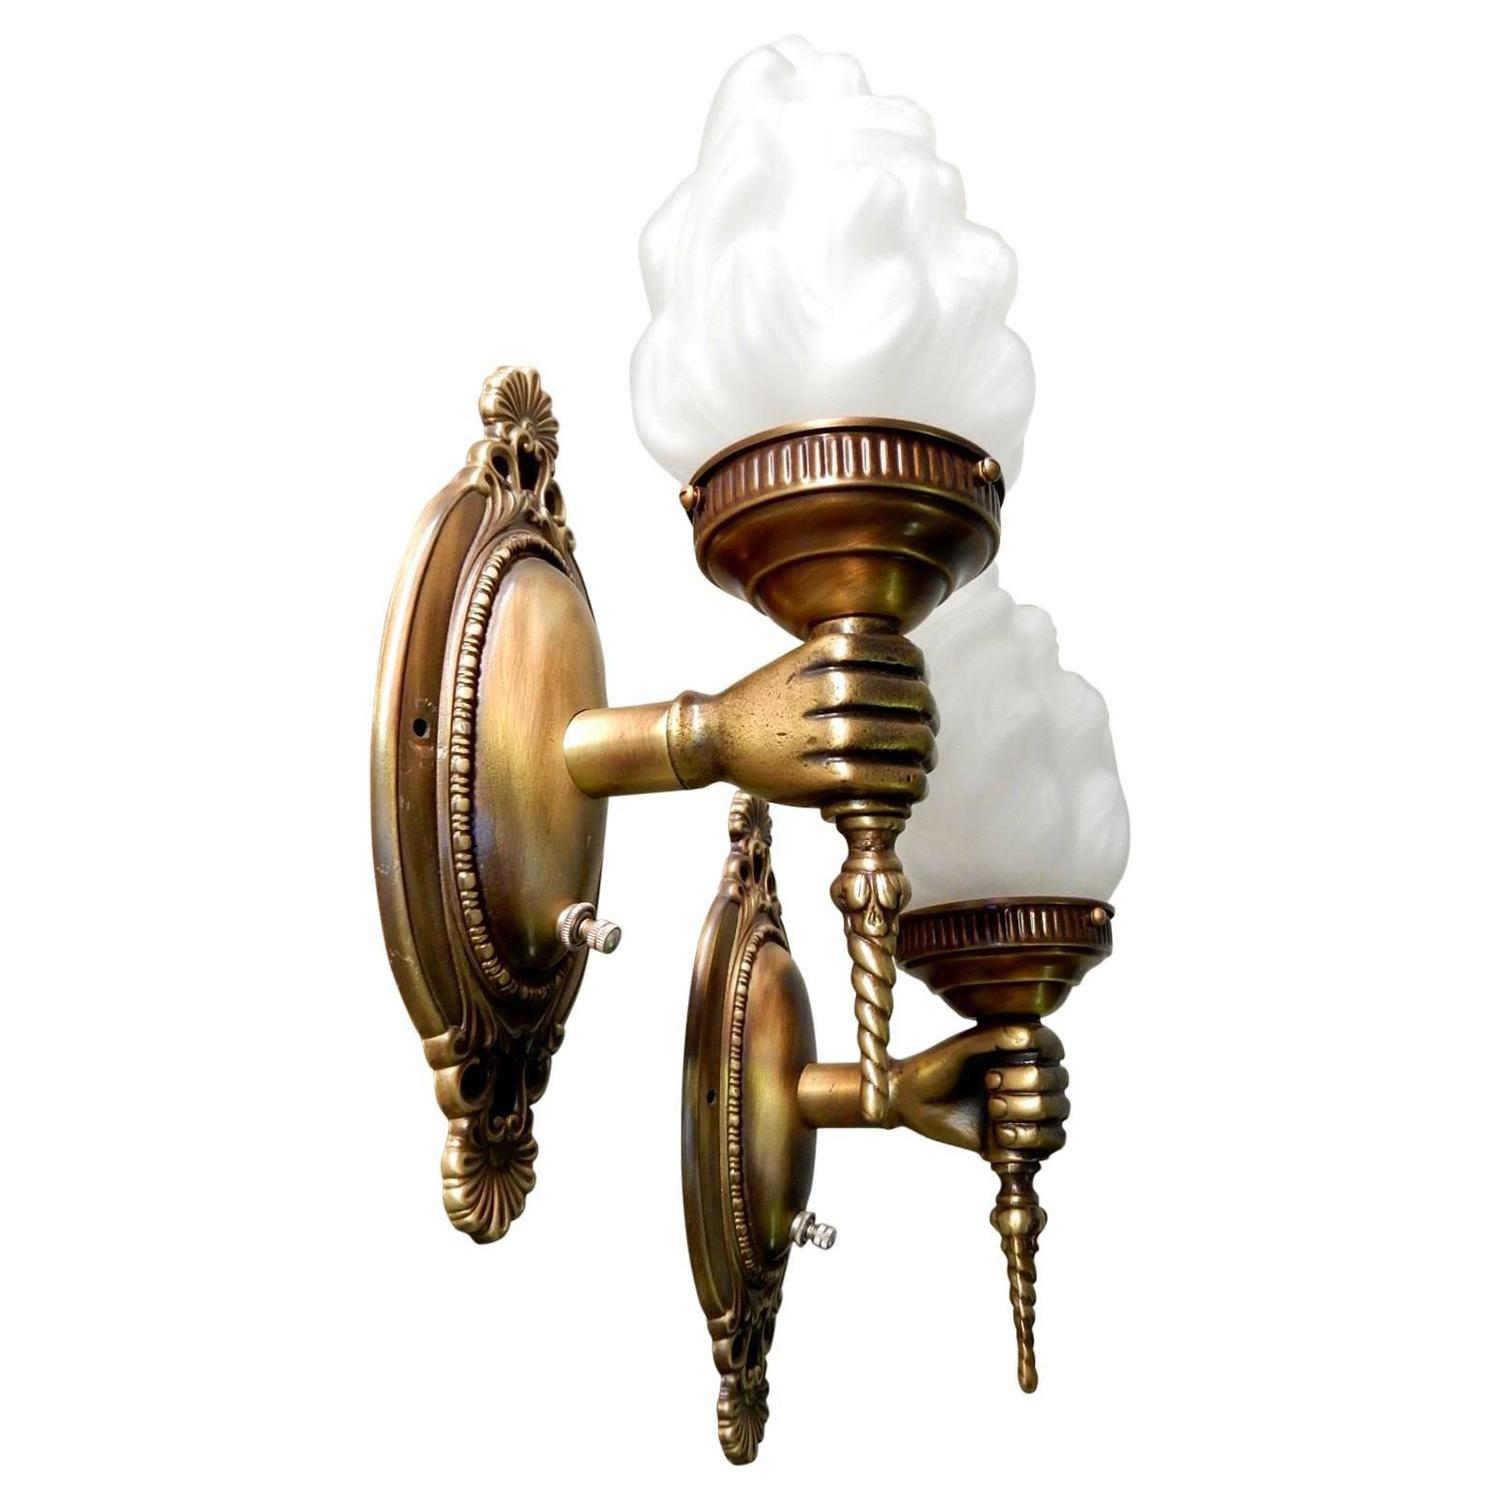 Pair Antique Brass Hand Torch Wall Sconce Lamps At 1stdibs